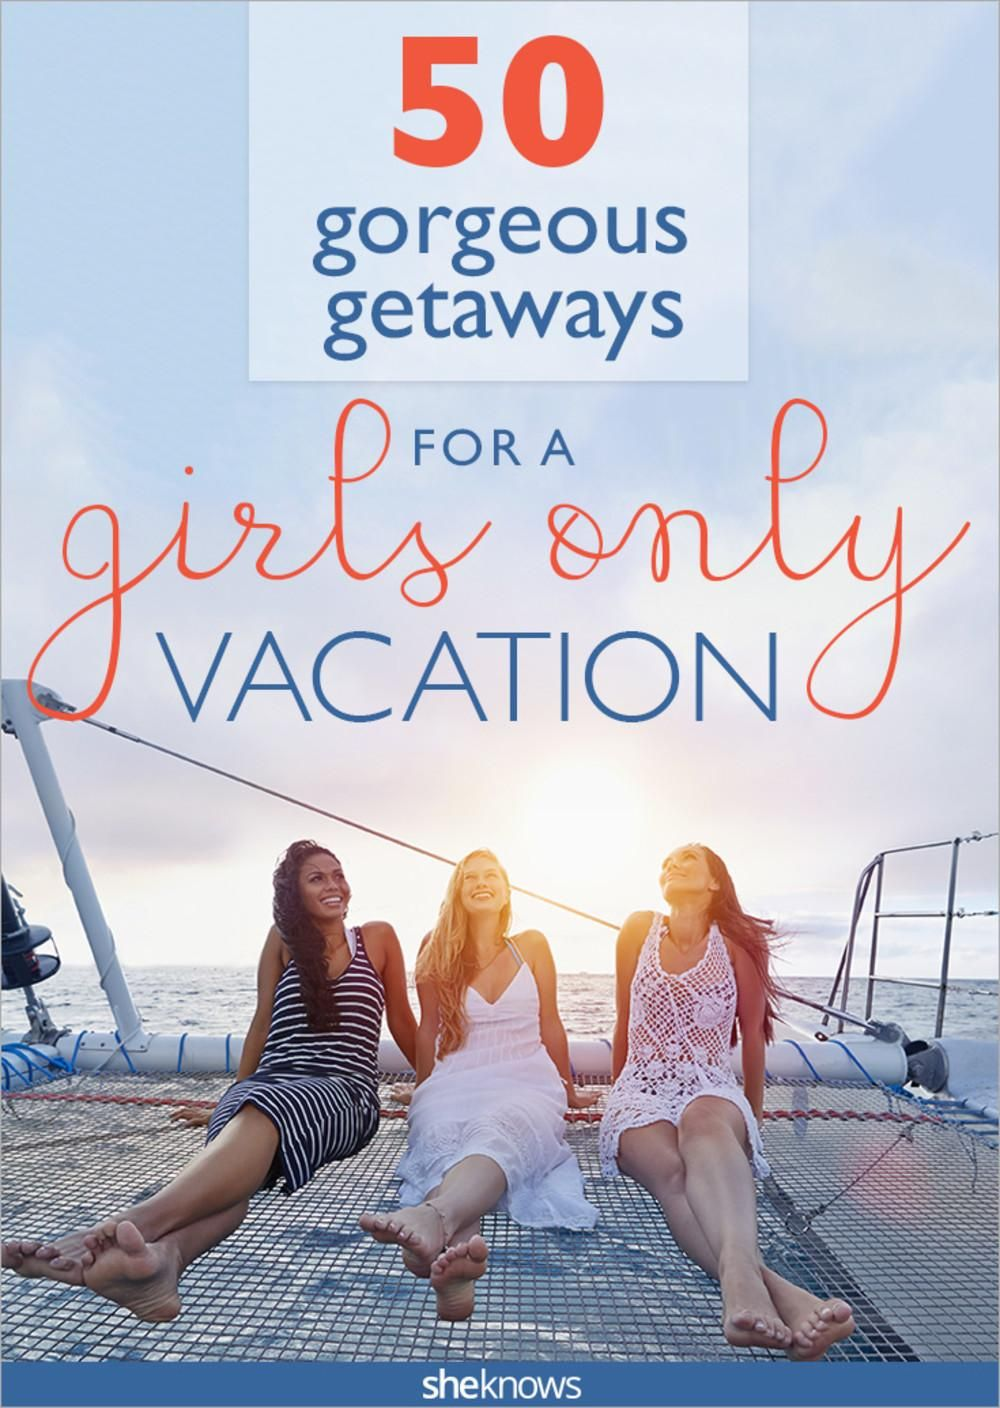 Gorgeous Getaways For Girlfriends Travel Destinations You And The Girls From All 50 States